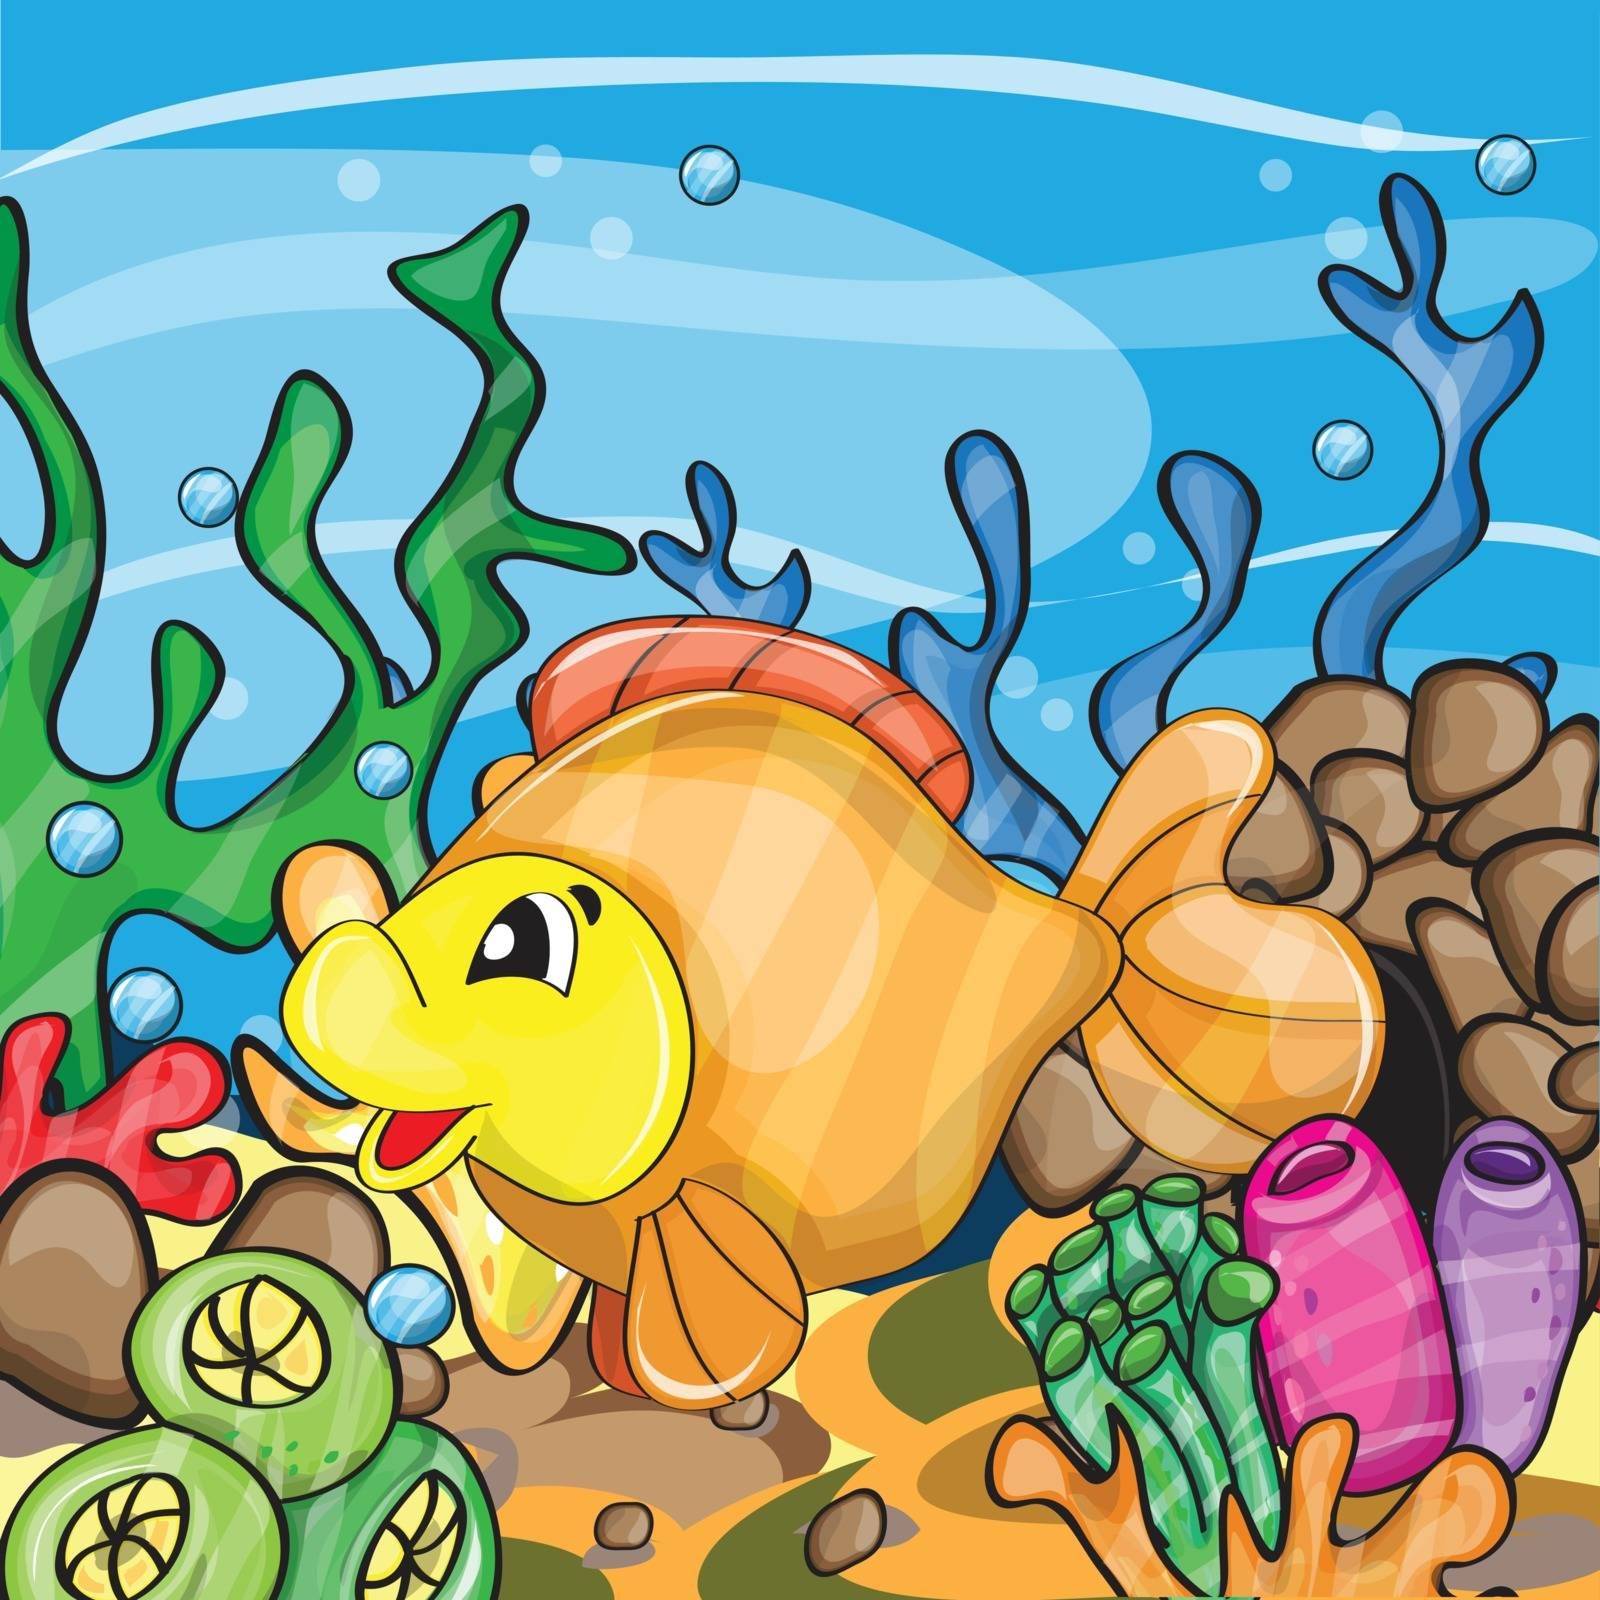 Illustration of a happy goldfish by natali_brill